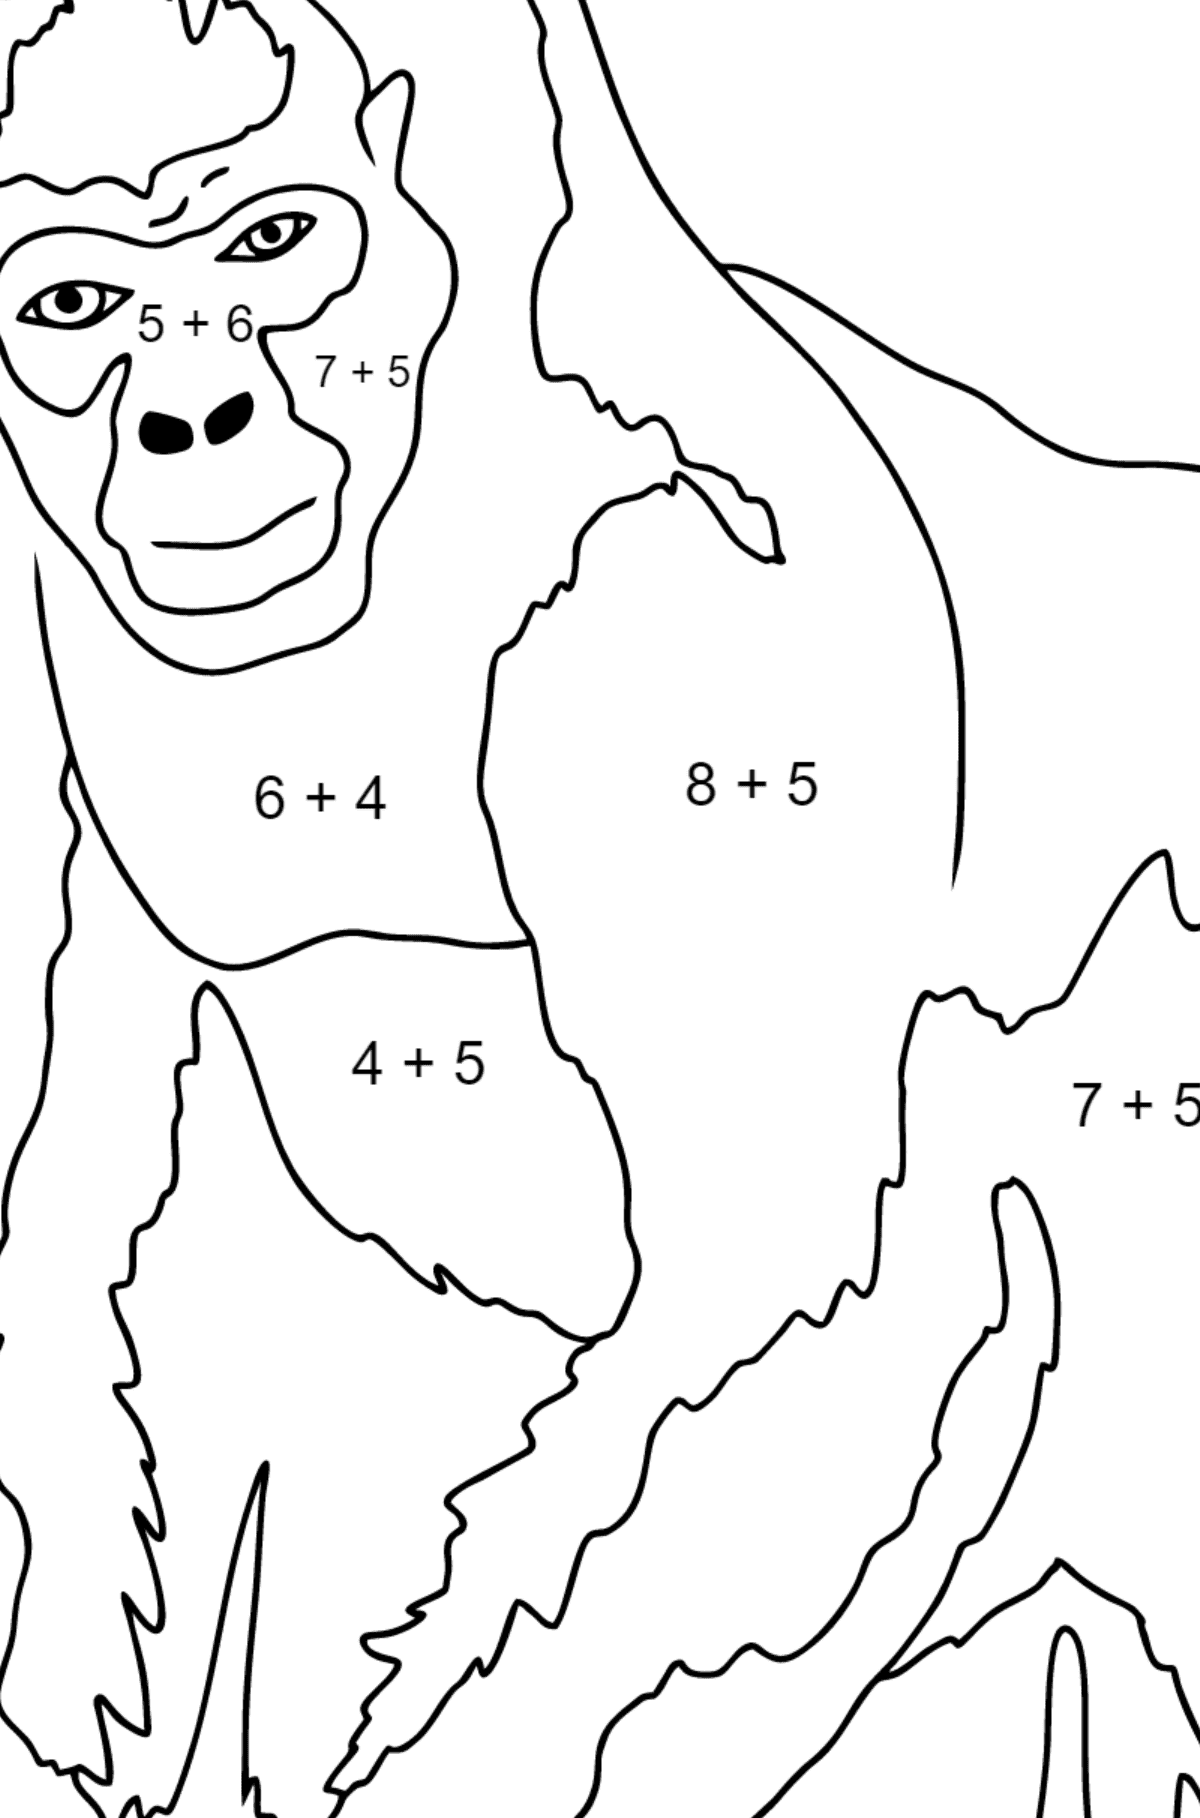 Coloring Page - A Real Gorilla - Math Coloring - Addition for Children